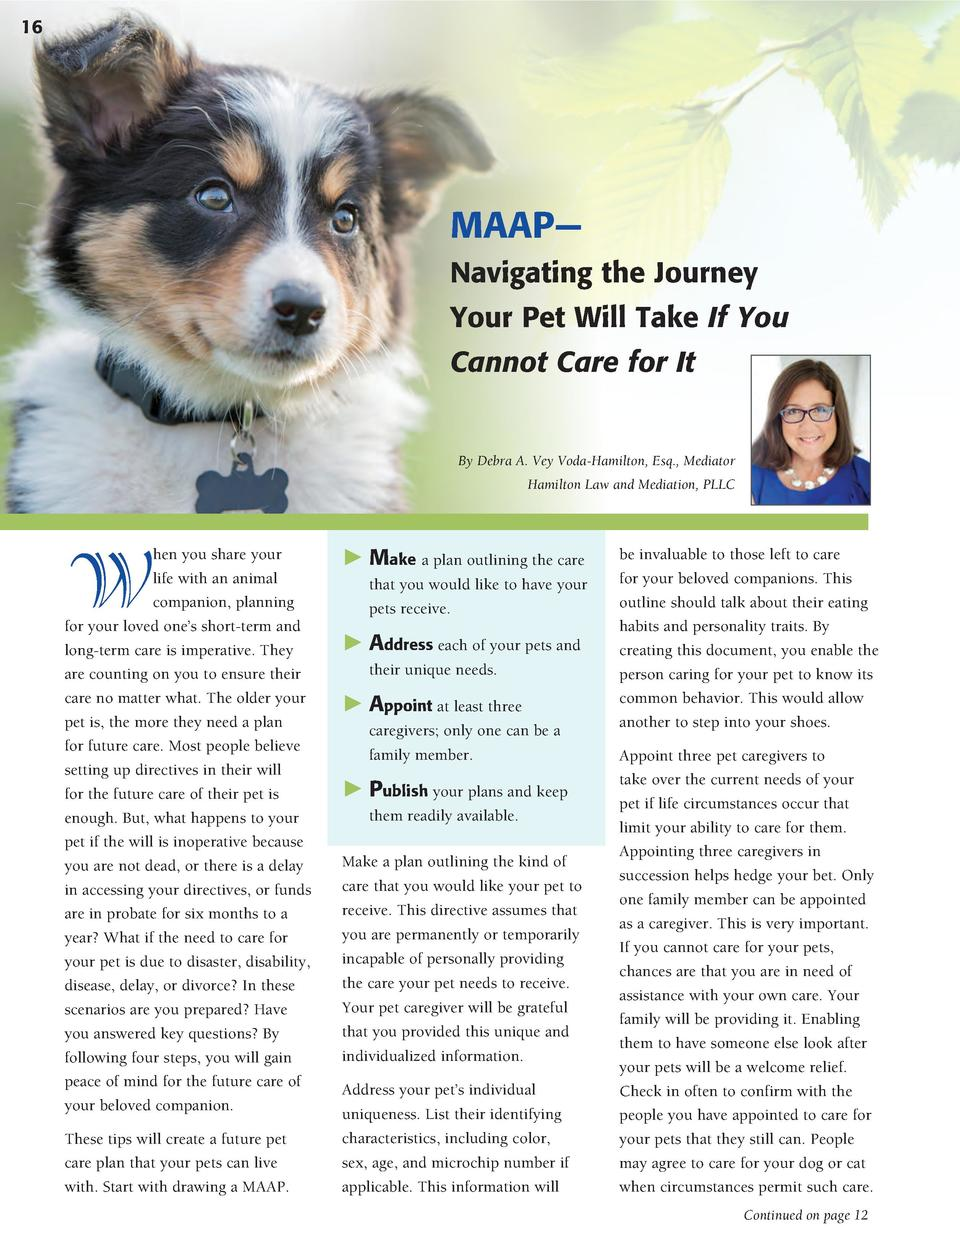 16  MAAP    Navigating the Journey Your Pet Will Take If You Cannot Care for It  By Debra A. Vey Voda-Hamilton, Esq., Medi...